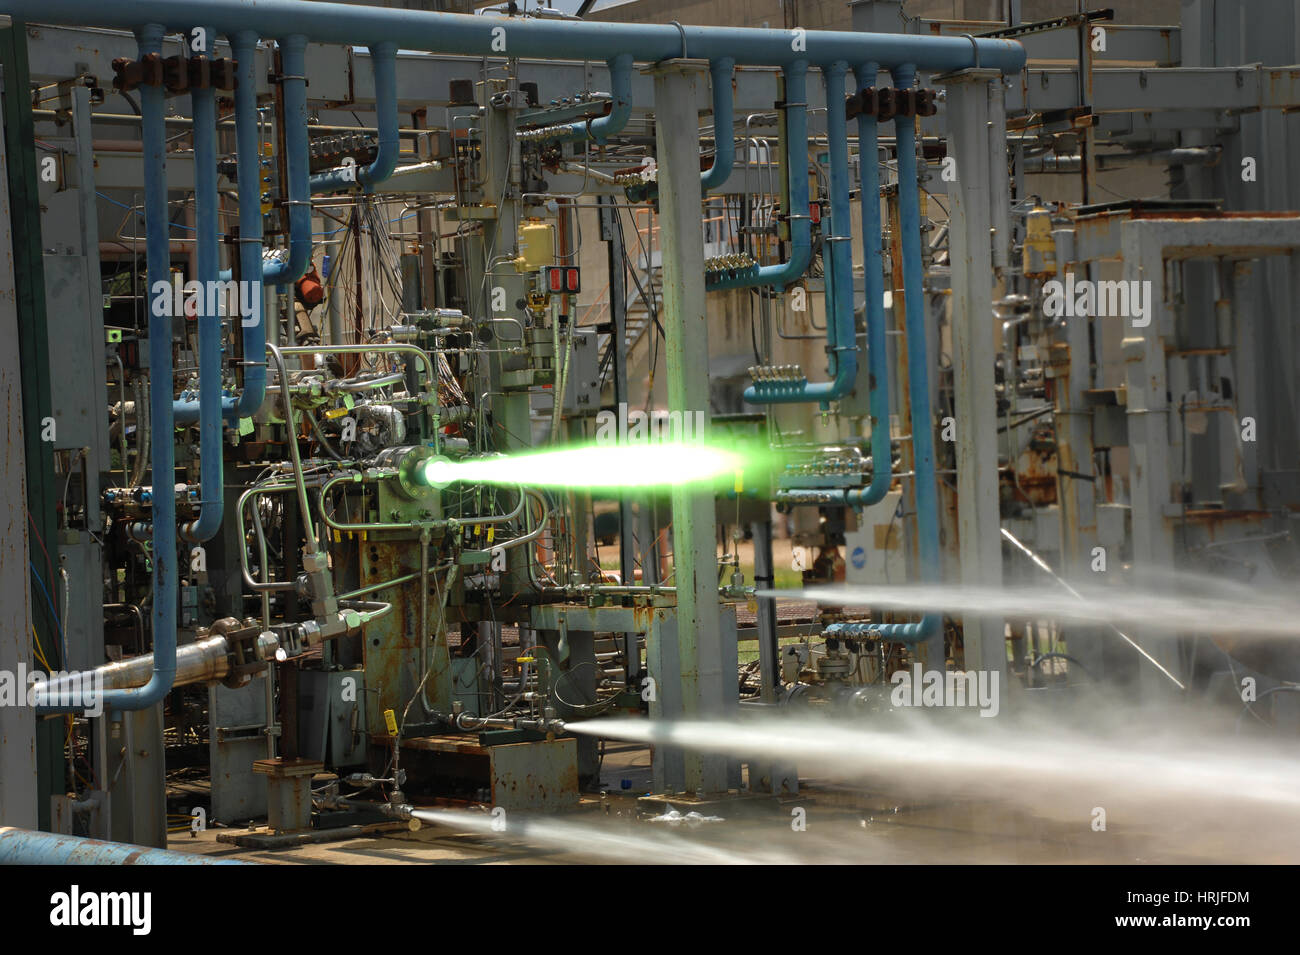 Heat-testing 3-D Printed Parts - Stock Image